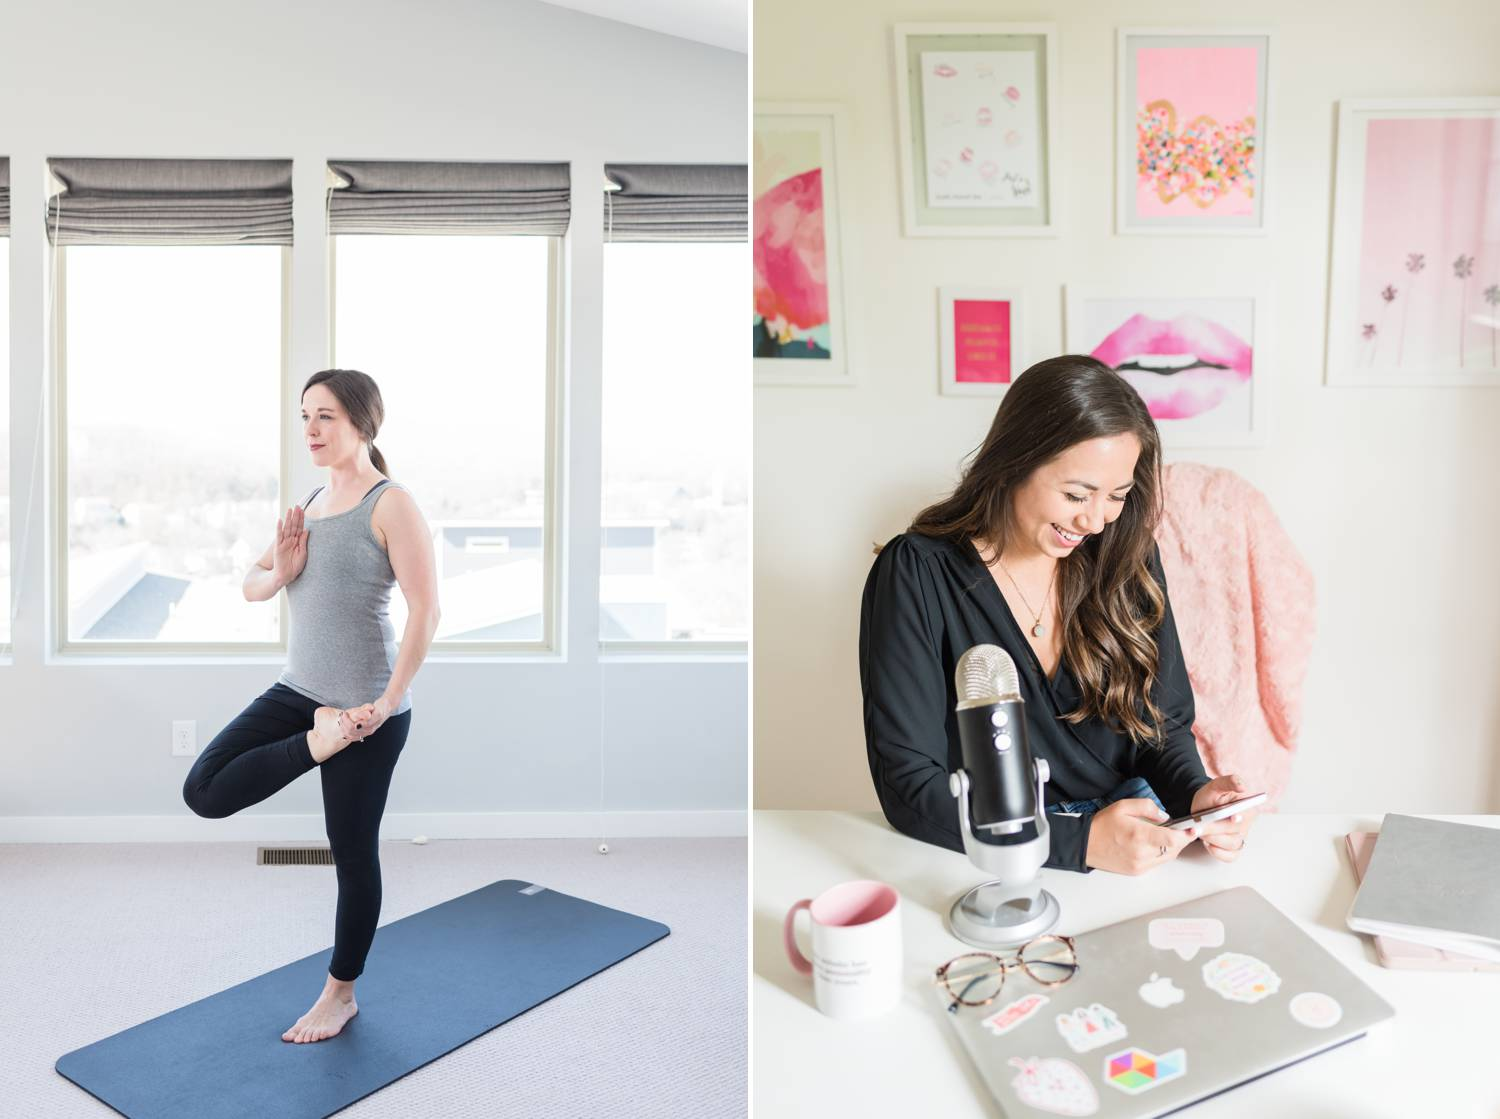 By Mandy Liz: In one photo, a woman poses on a yoga mat in a brightly lit room. In the next photo, a podcaster reviews client feedback on her phone.